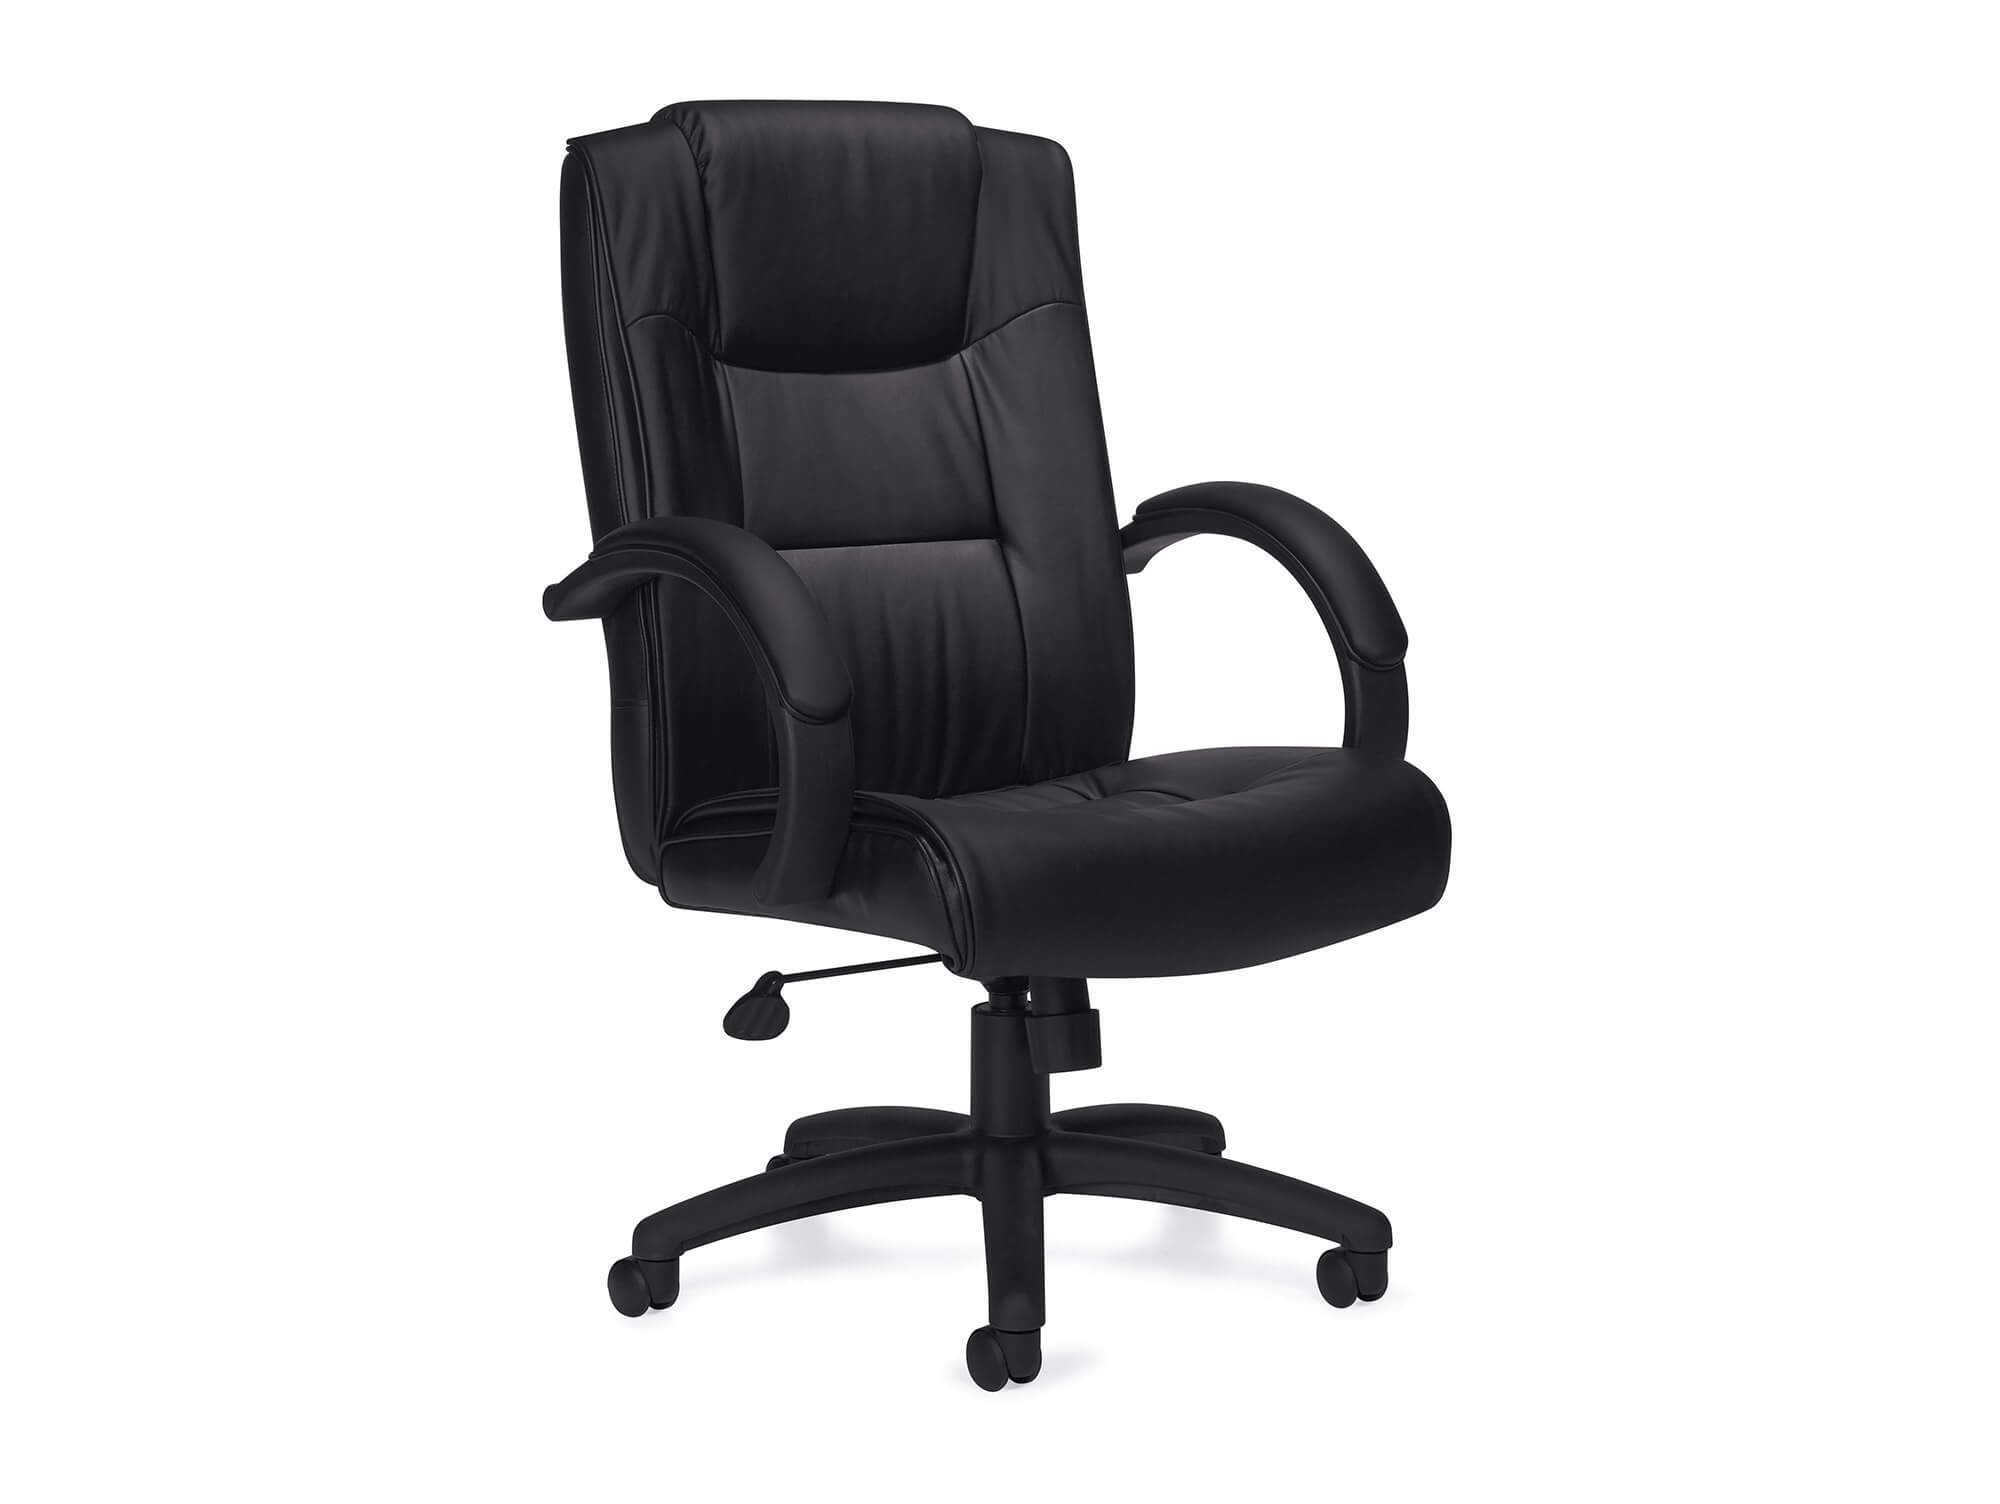 chairs-for-office-executive-high-back-office-chairs.jpg